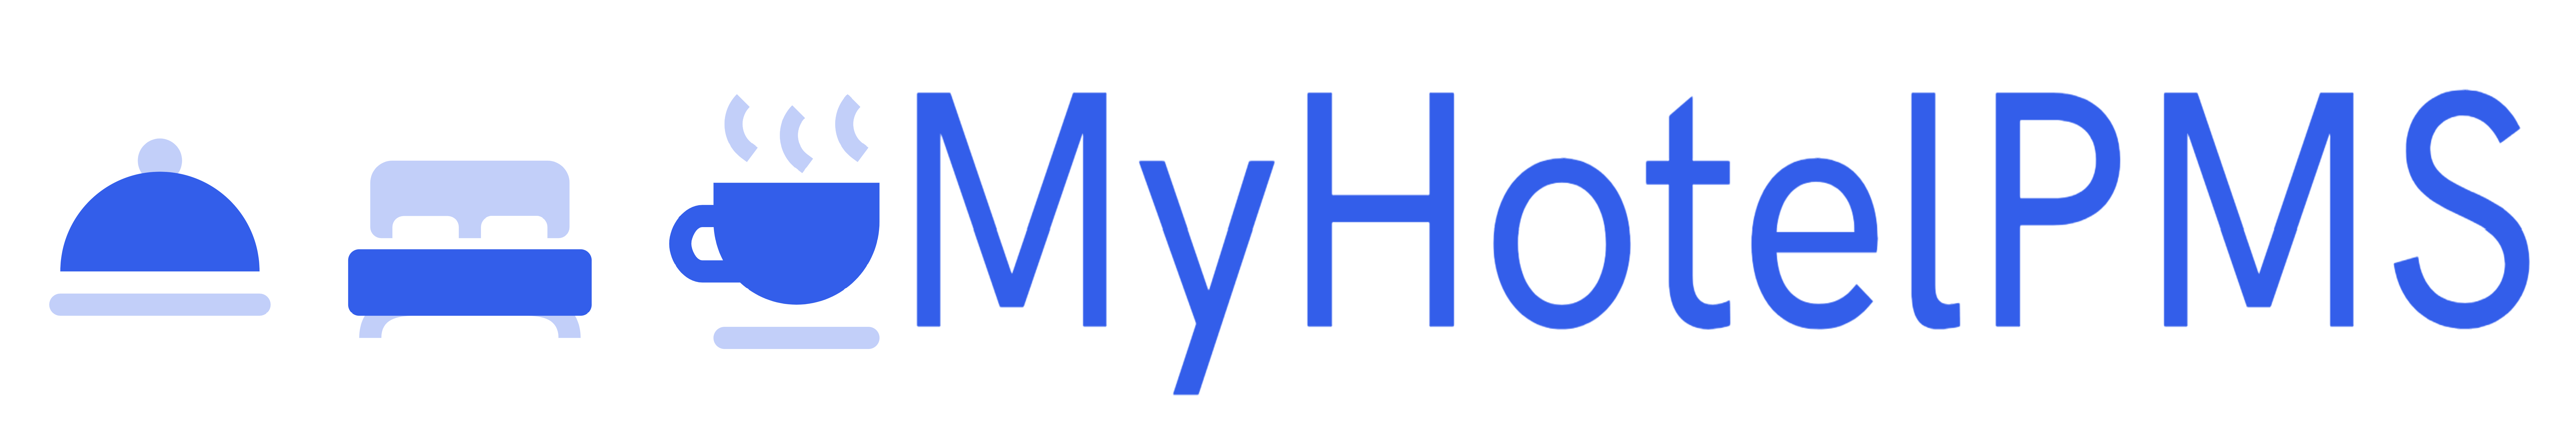 Blog Hotel Management Software MyHotelPMS Welcome to our blog! 